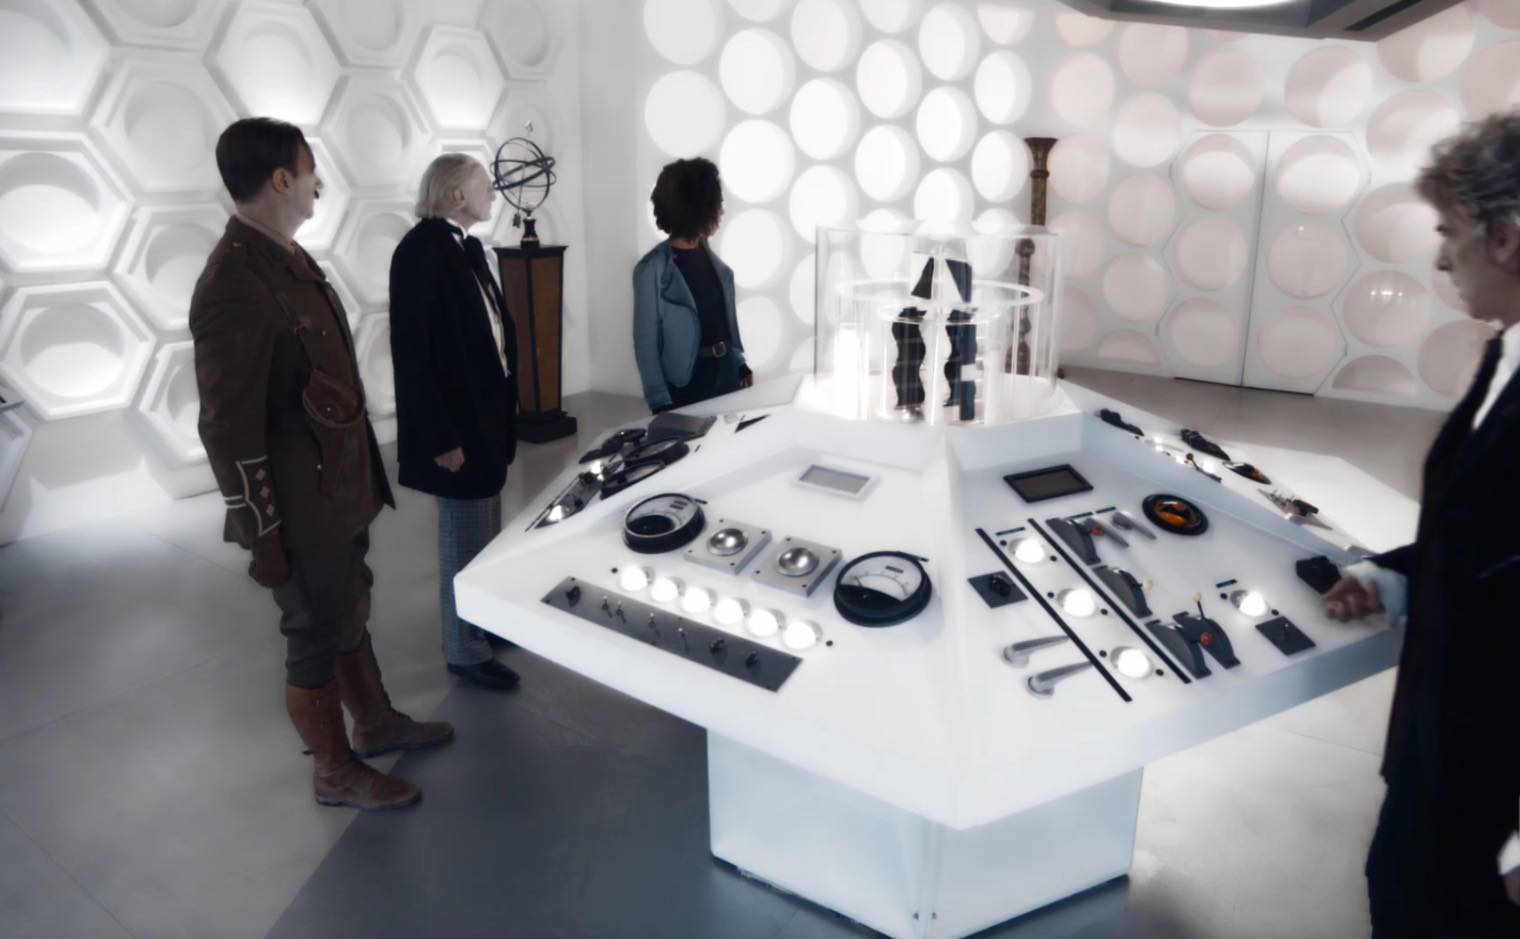 12th 1st Bill Captain in TARDIS doors about to open.jpg & Image - 12th 1st Bill Captain in TARDIS doors about to open.jpg ...